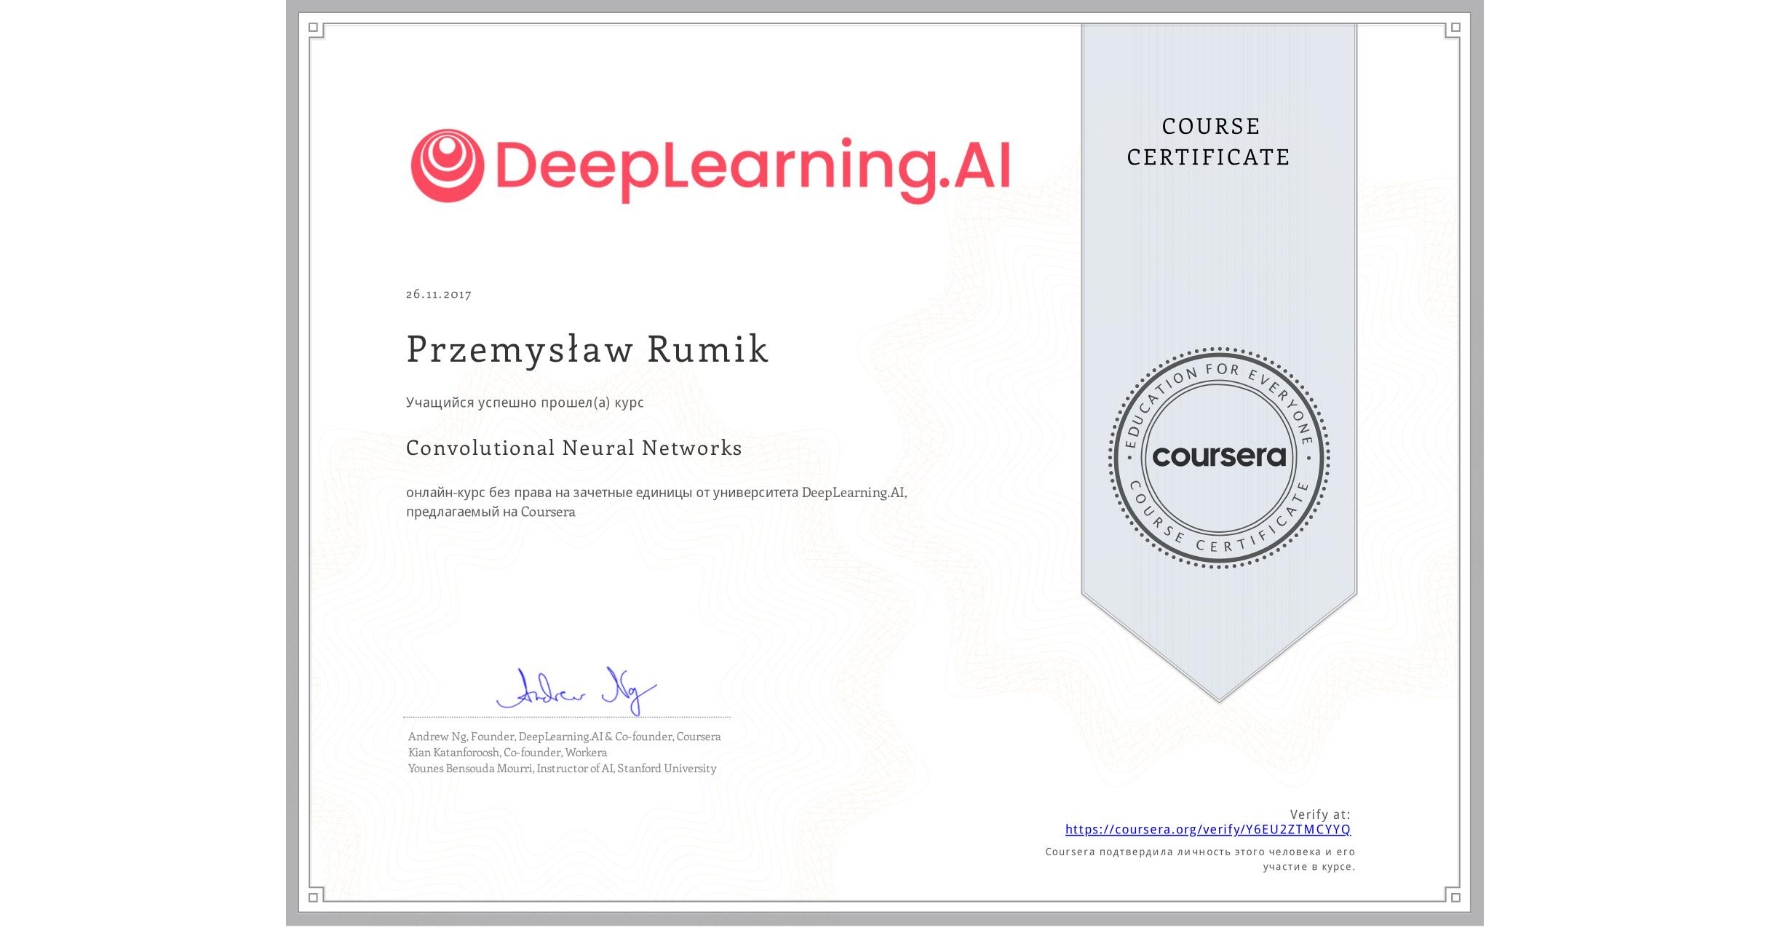 View certificate for Przemysław Rumik, Convolutional Neural Networks, an online non-credit course authorized by DeepLearning.AI and offered through Coursera